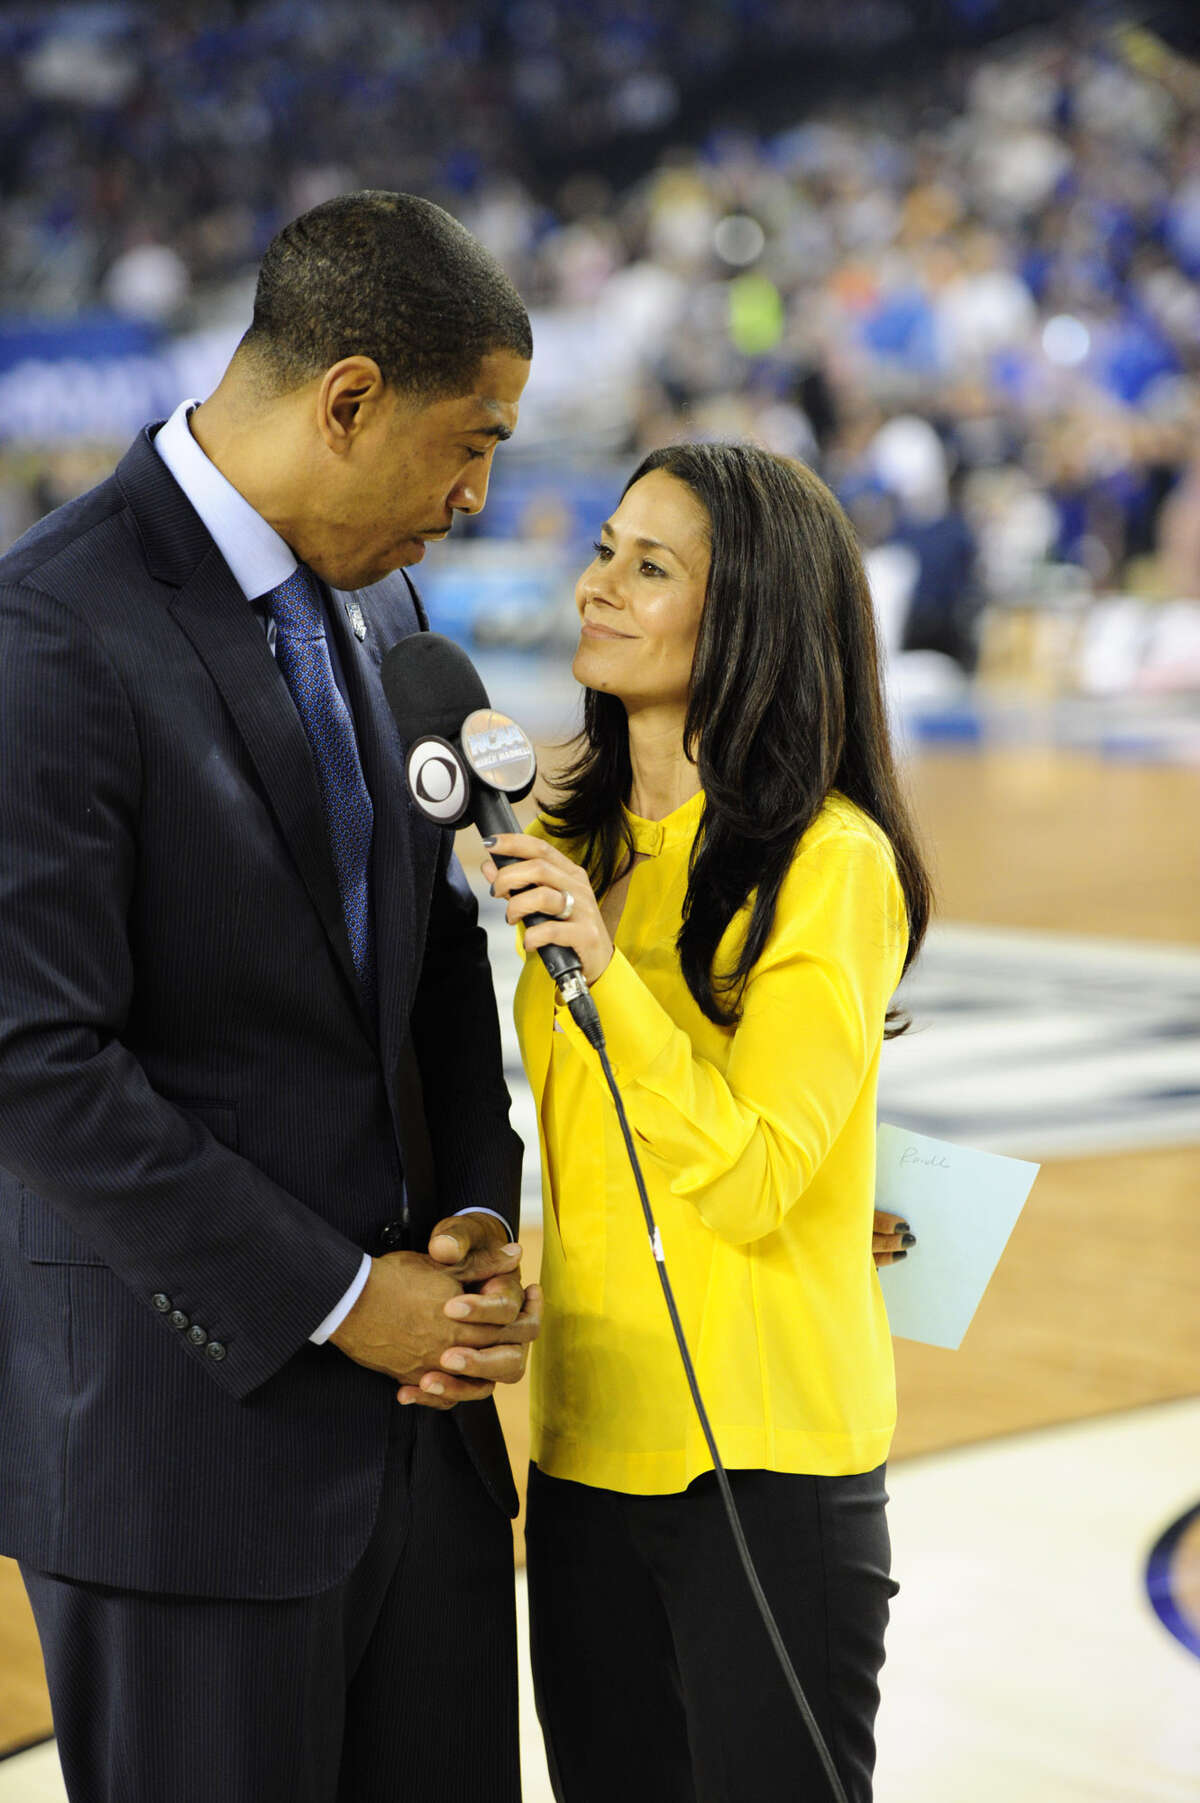 2014 NCAA FINAL FOUR IN NORTH TEXAS. MONDAY Championship game Winning UConn head coach Kenin Ollie and cbs Reporter Tracy Wolfson. CBS photo by John P. Filo c.2014 CBS BROADCASTING INC. ALL RIGHTS RESERVED